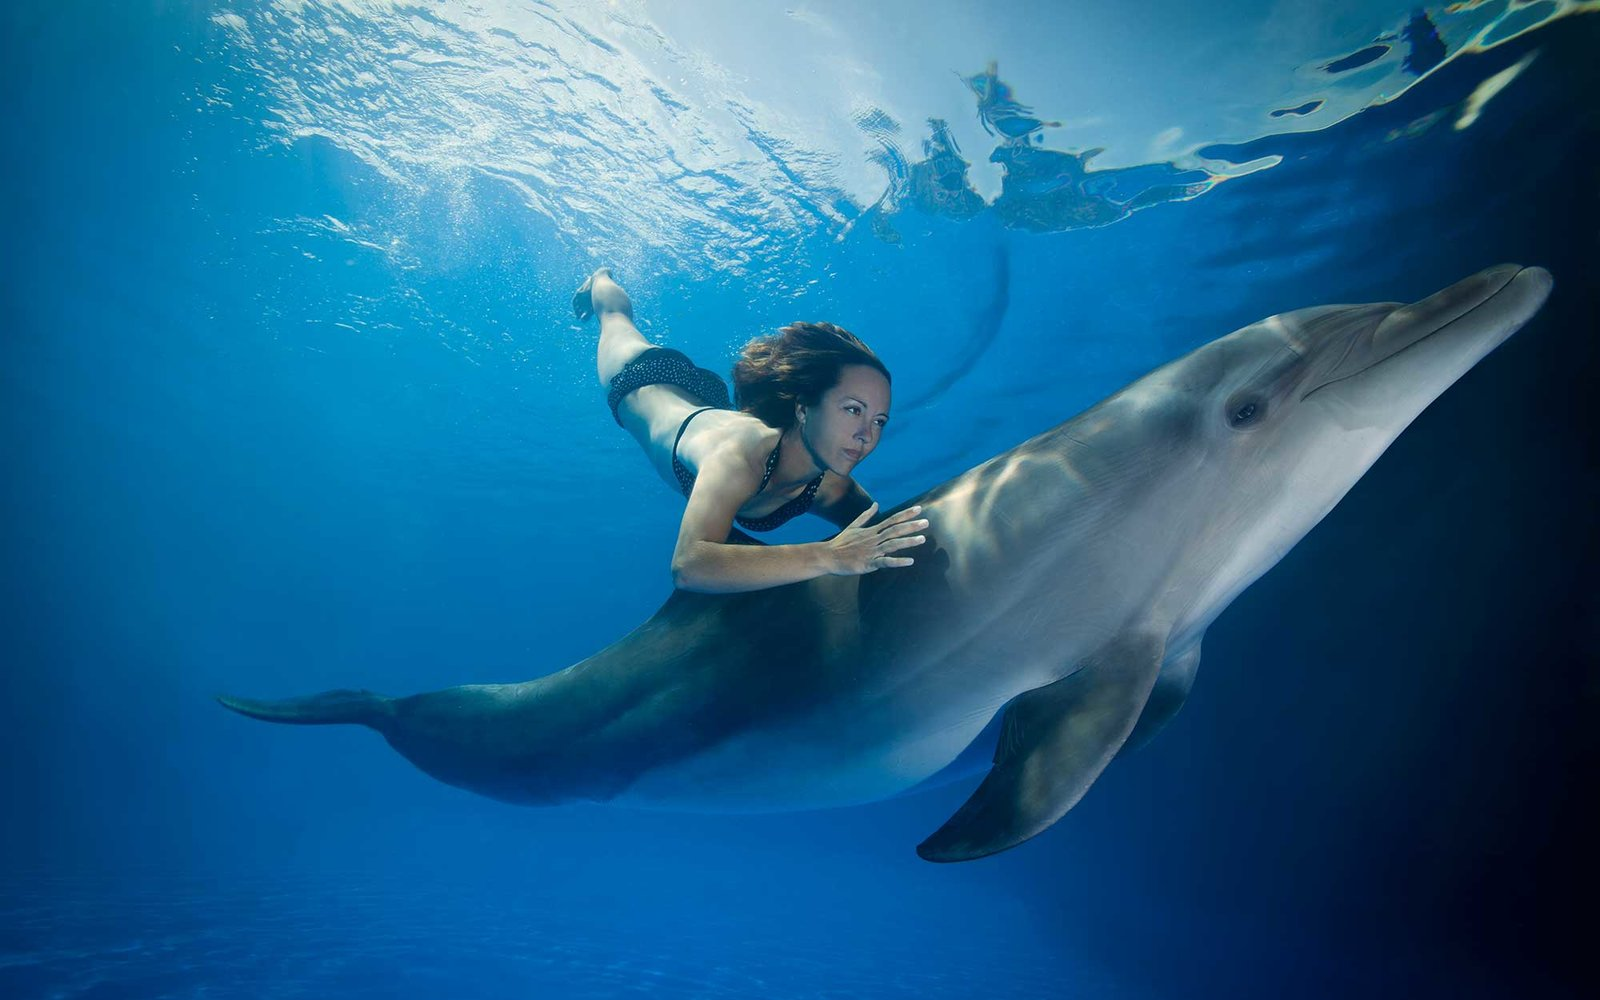 Swimming with dolphins in Mexico